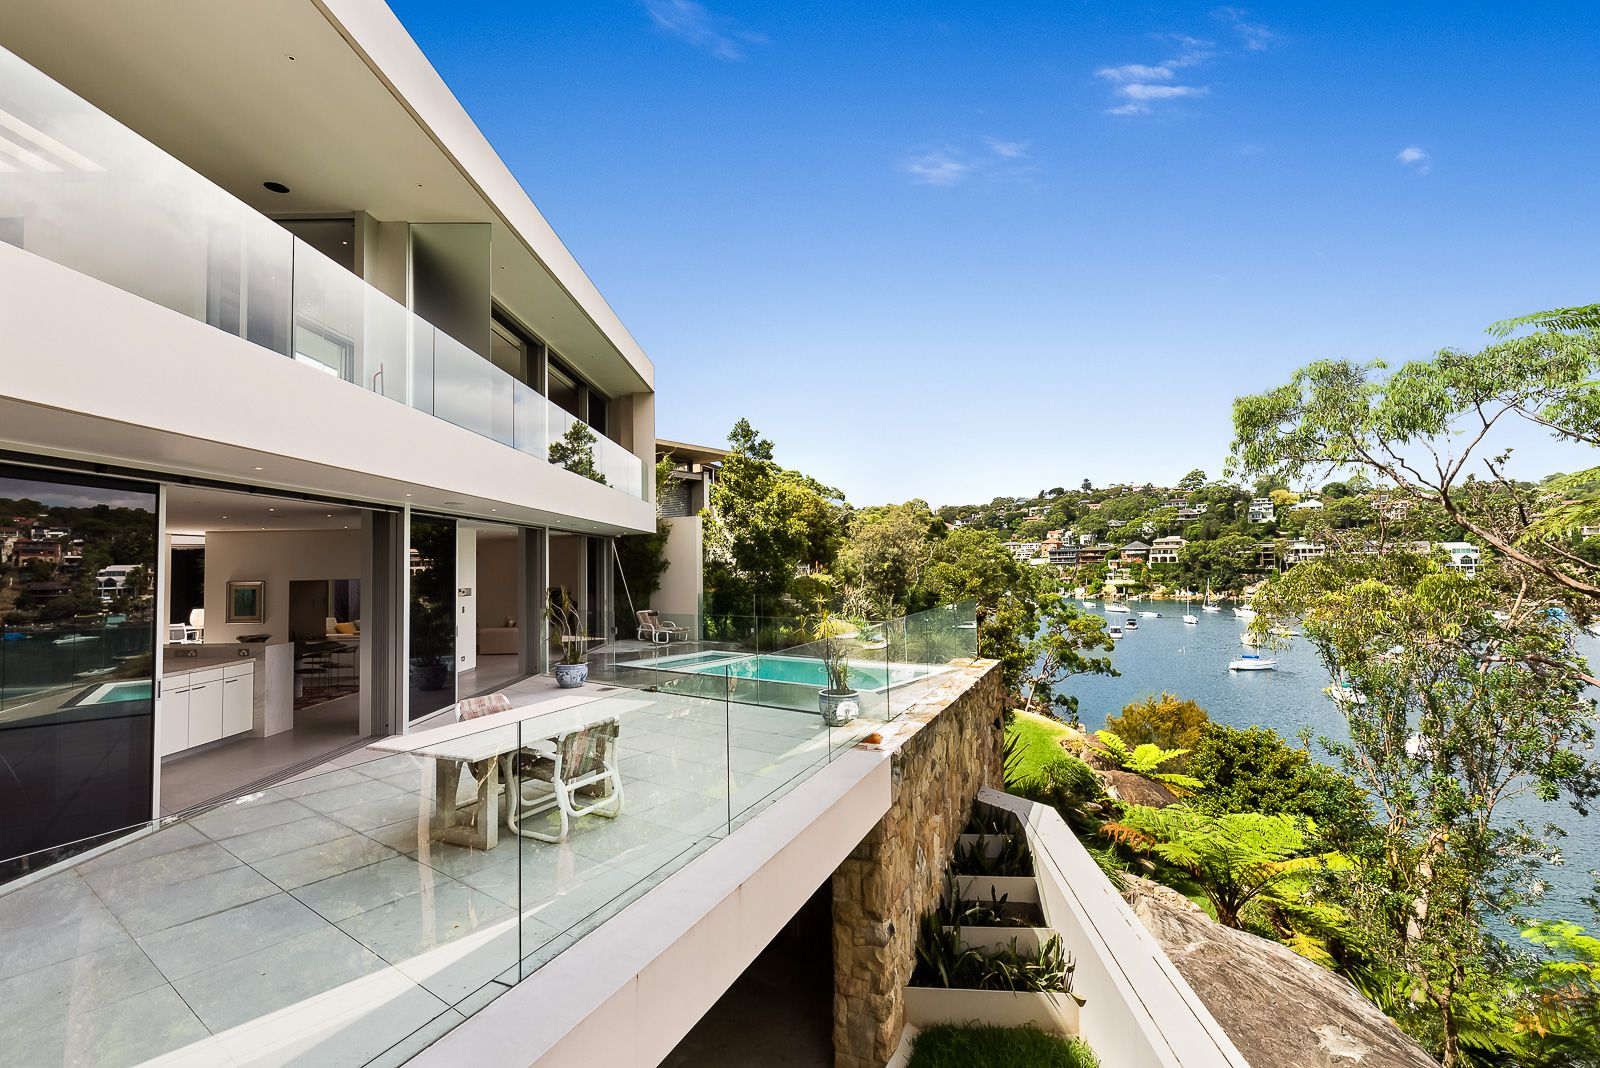 7 bedroom house for sale at 38 Bay Street, Mosman NSW 2088. View ...